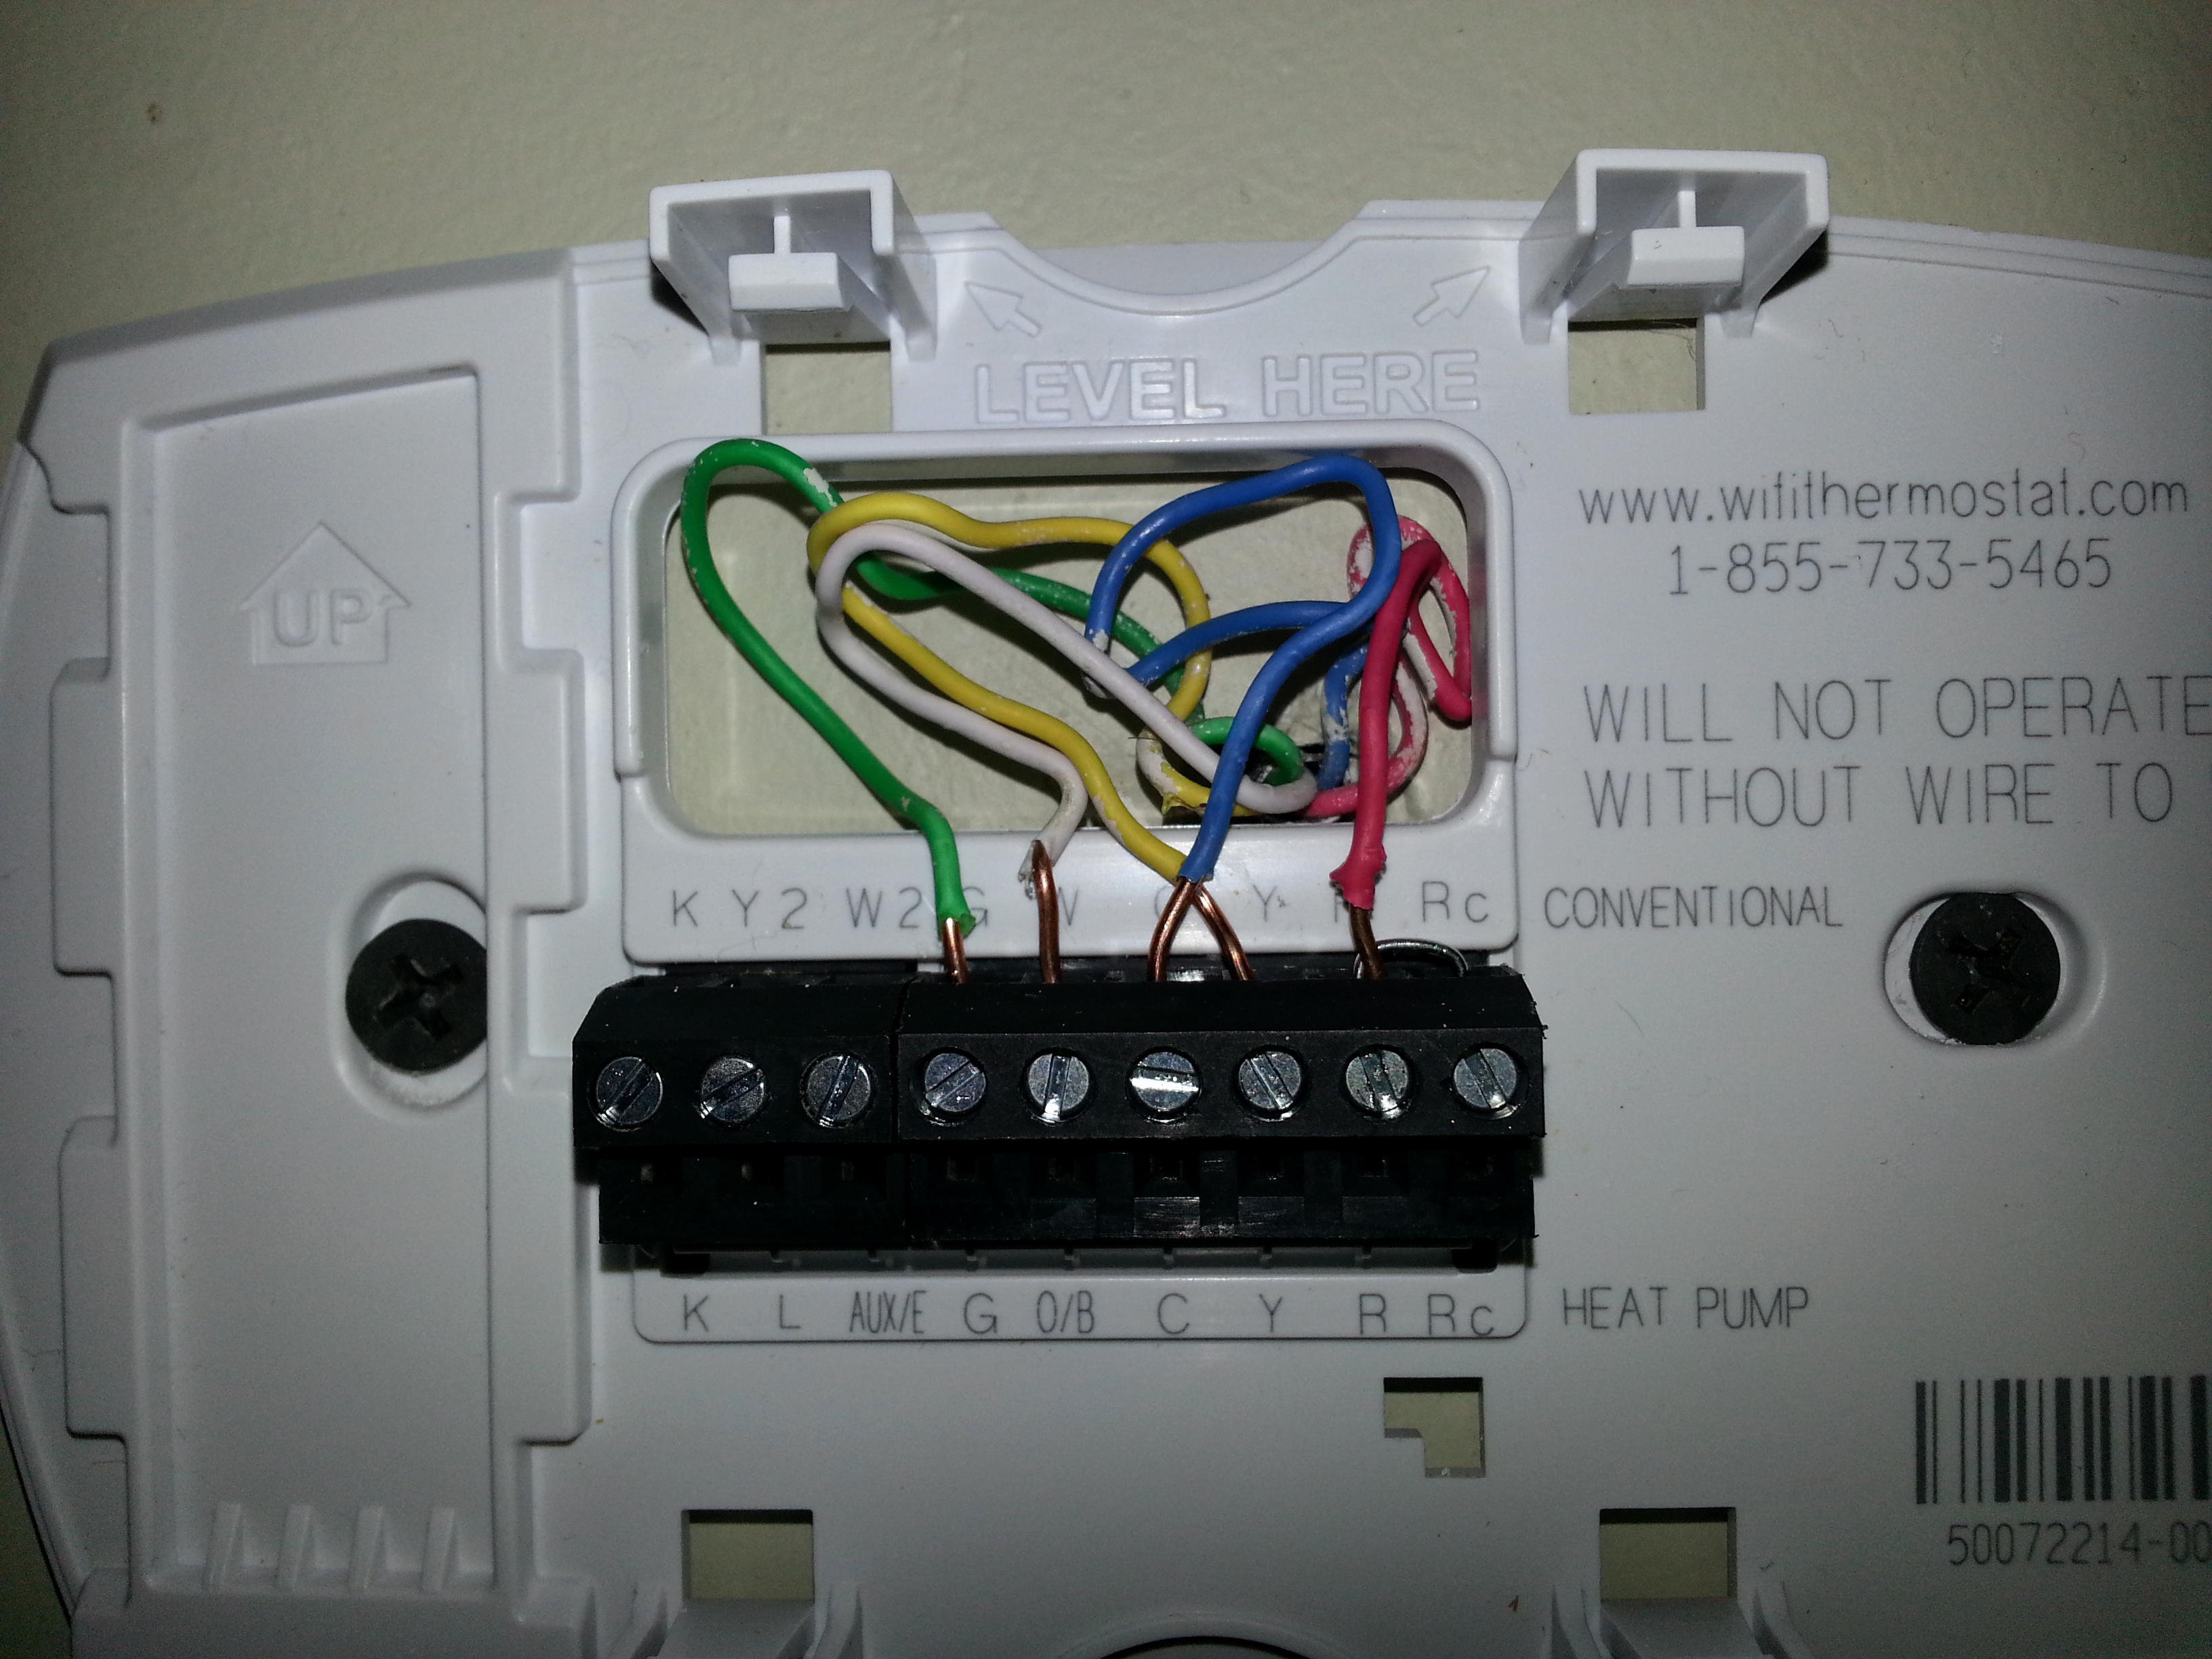 Wiring Diagram Honeywell Thermostat Th6220D1002 | Wiring Library - Honeywell Wifi Thermostat Wiring Diagram